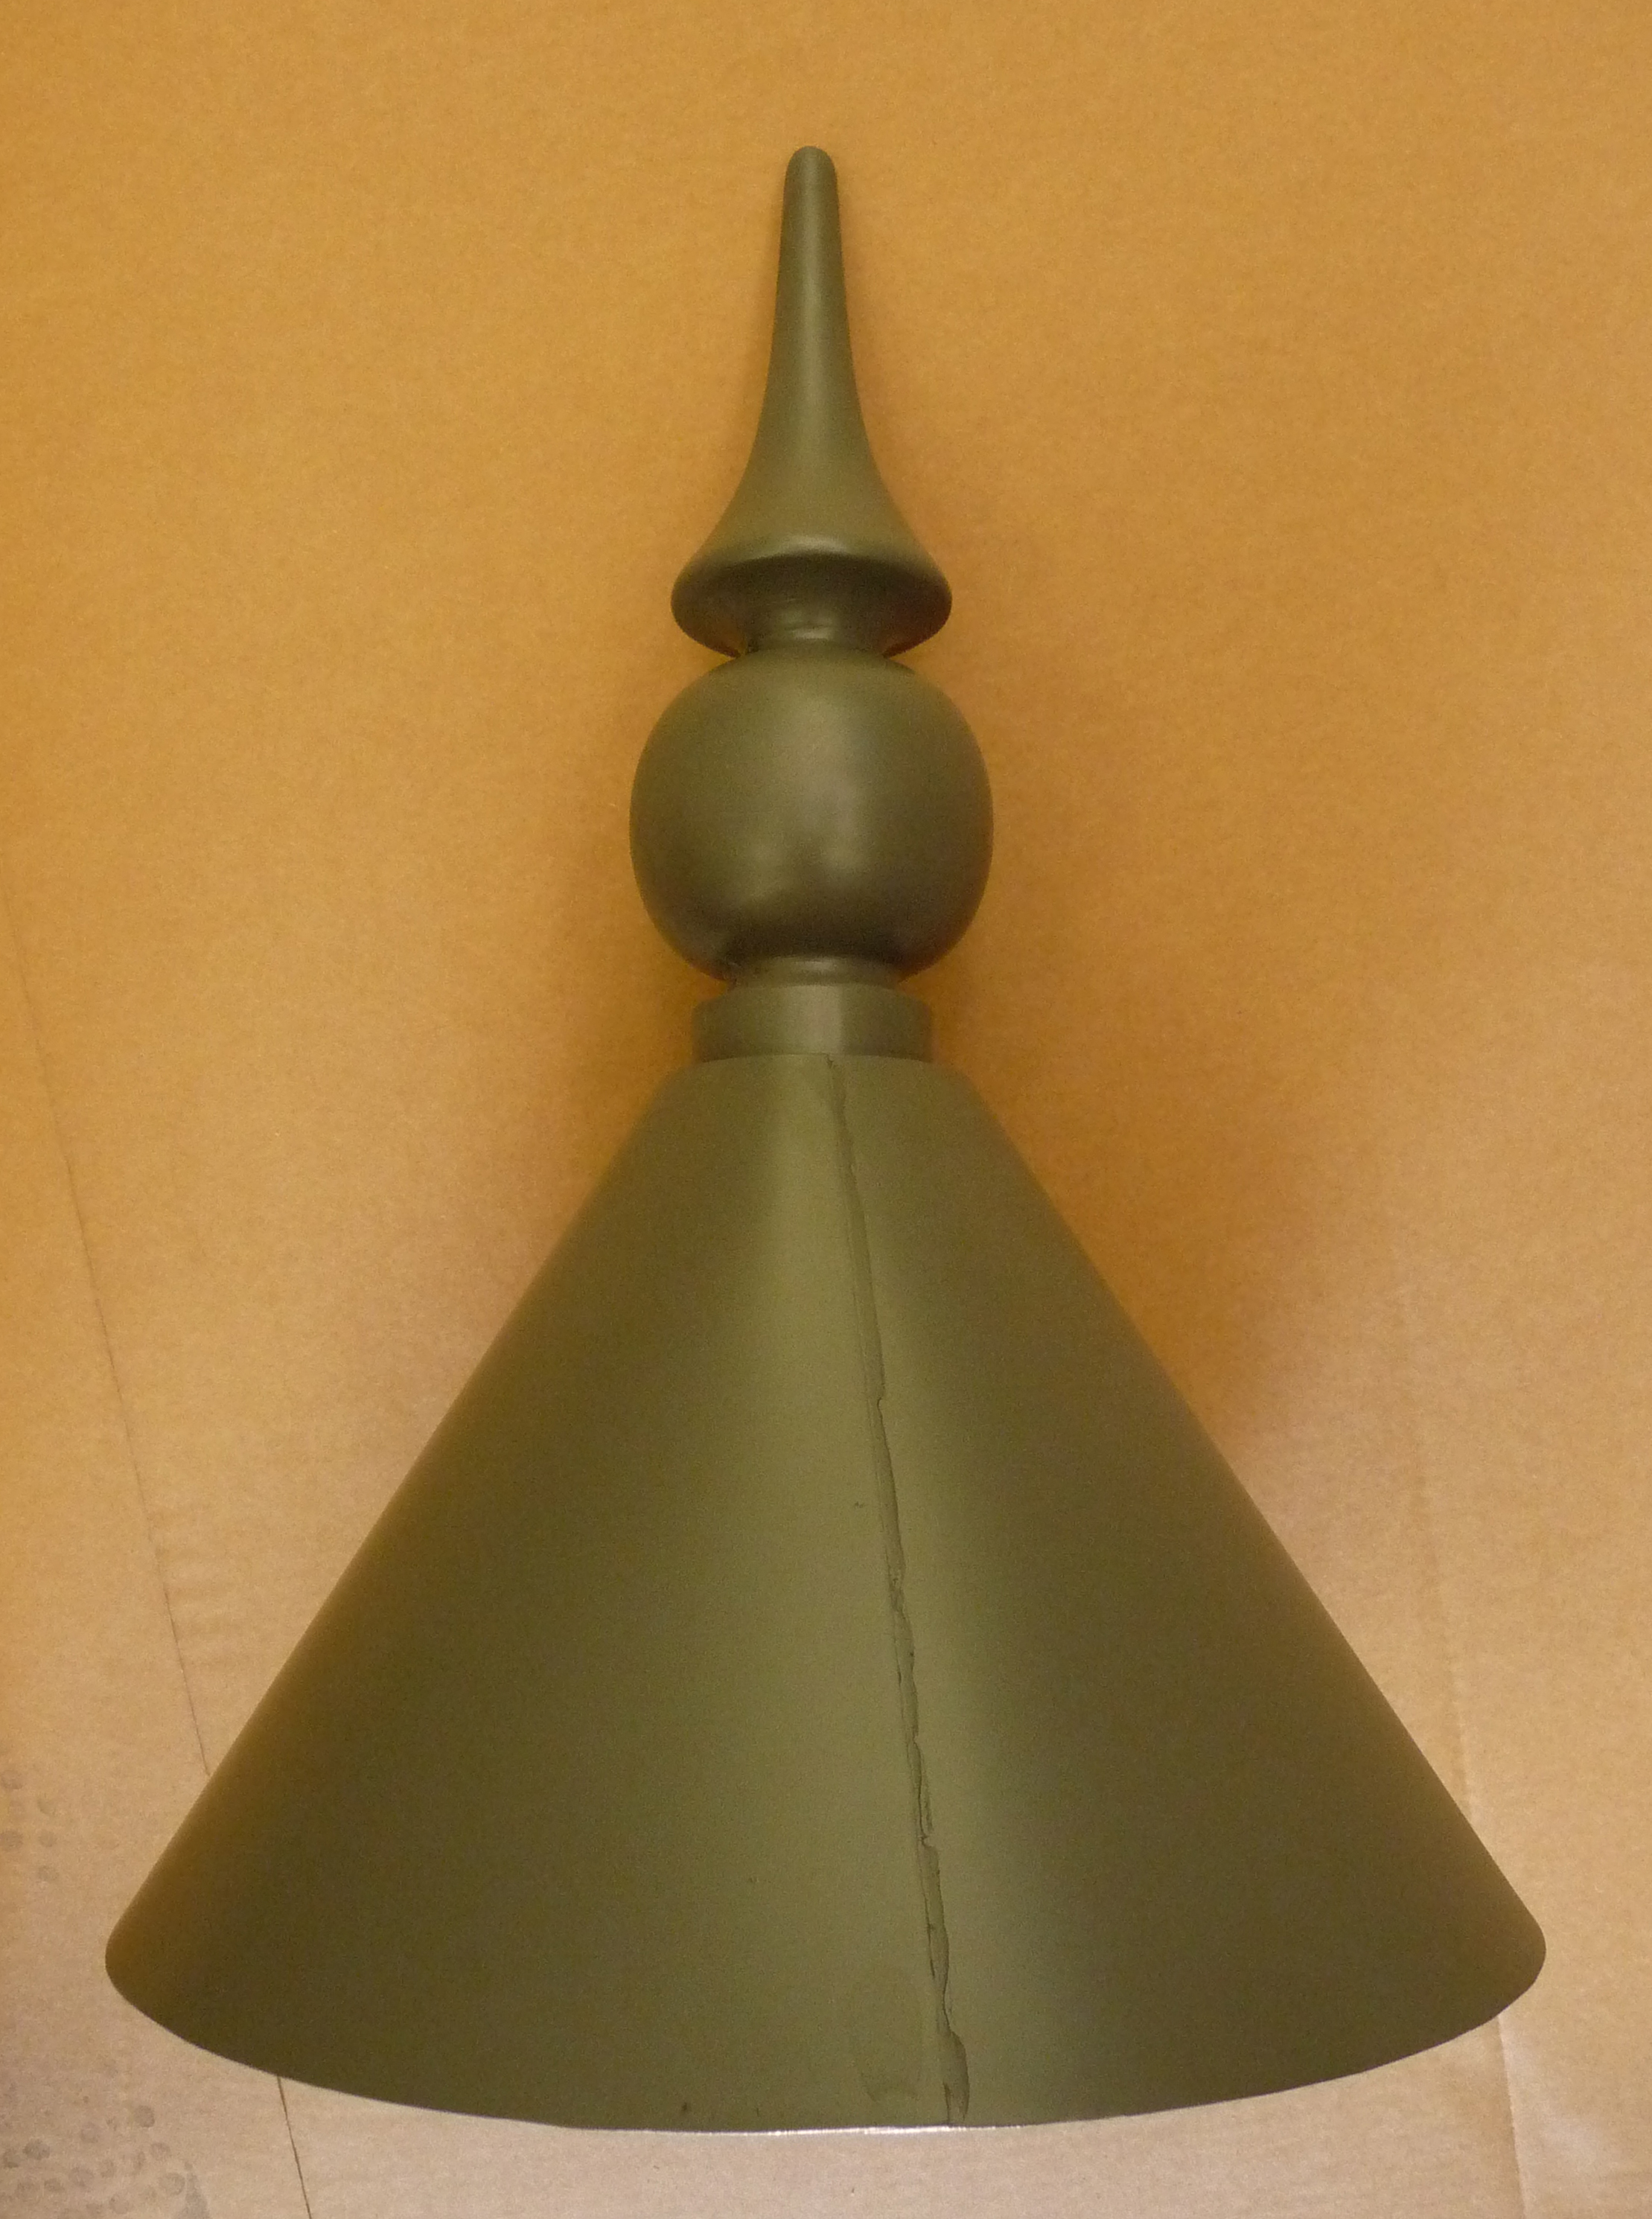 GRP lead effect finial with skirt